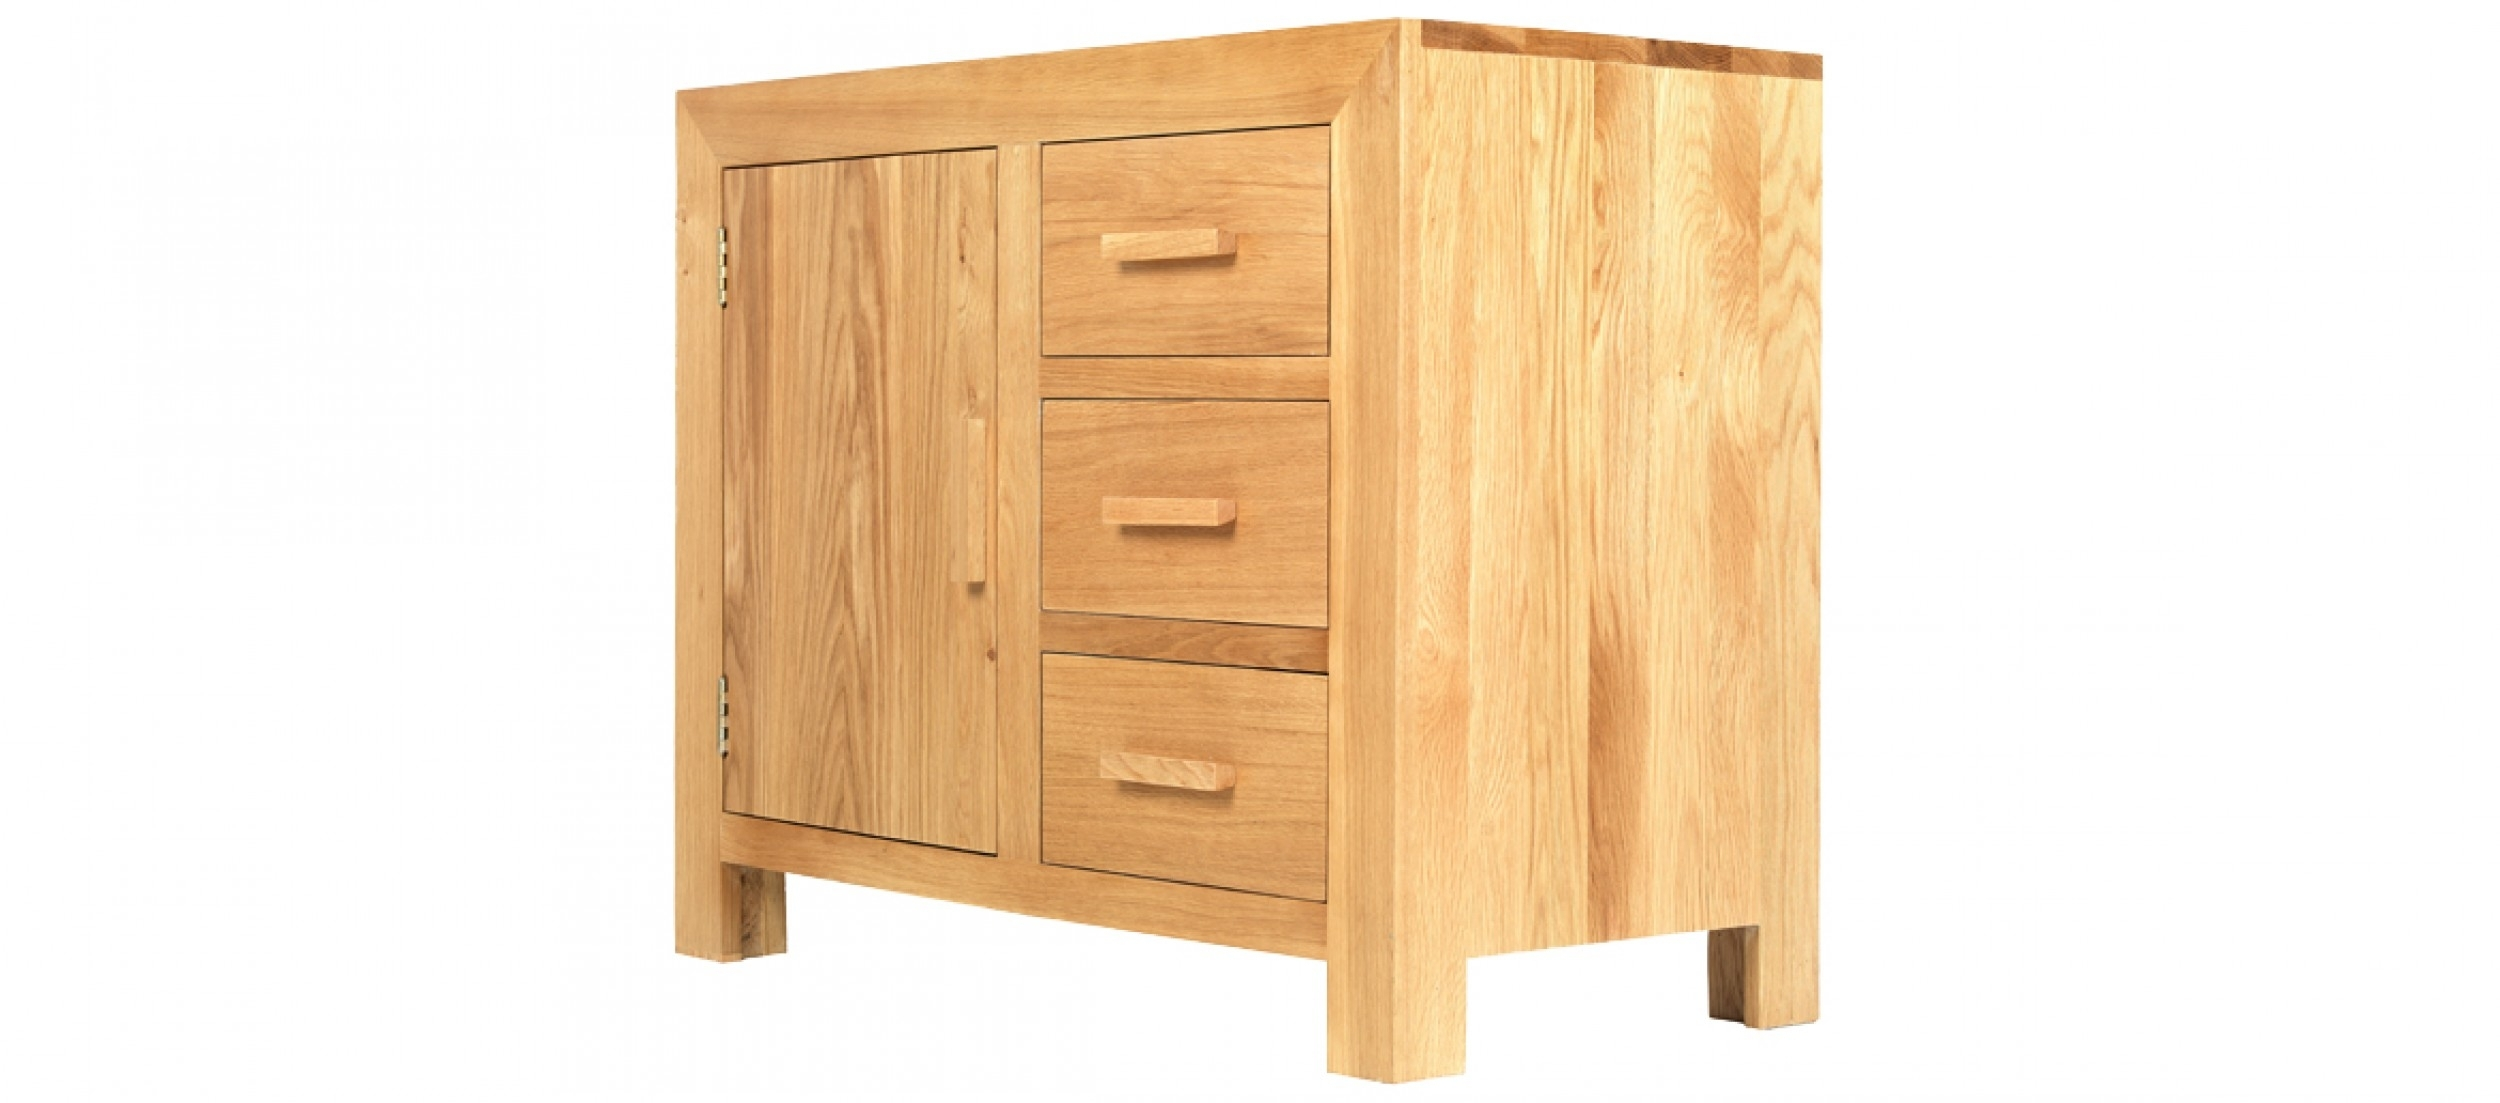 Cube Oak Small Sideboard | Quercus Living Regarding Most Recent 2 Door/2 Drawer Cast Jali Sideboards (View 13 of 20)